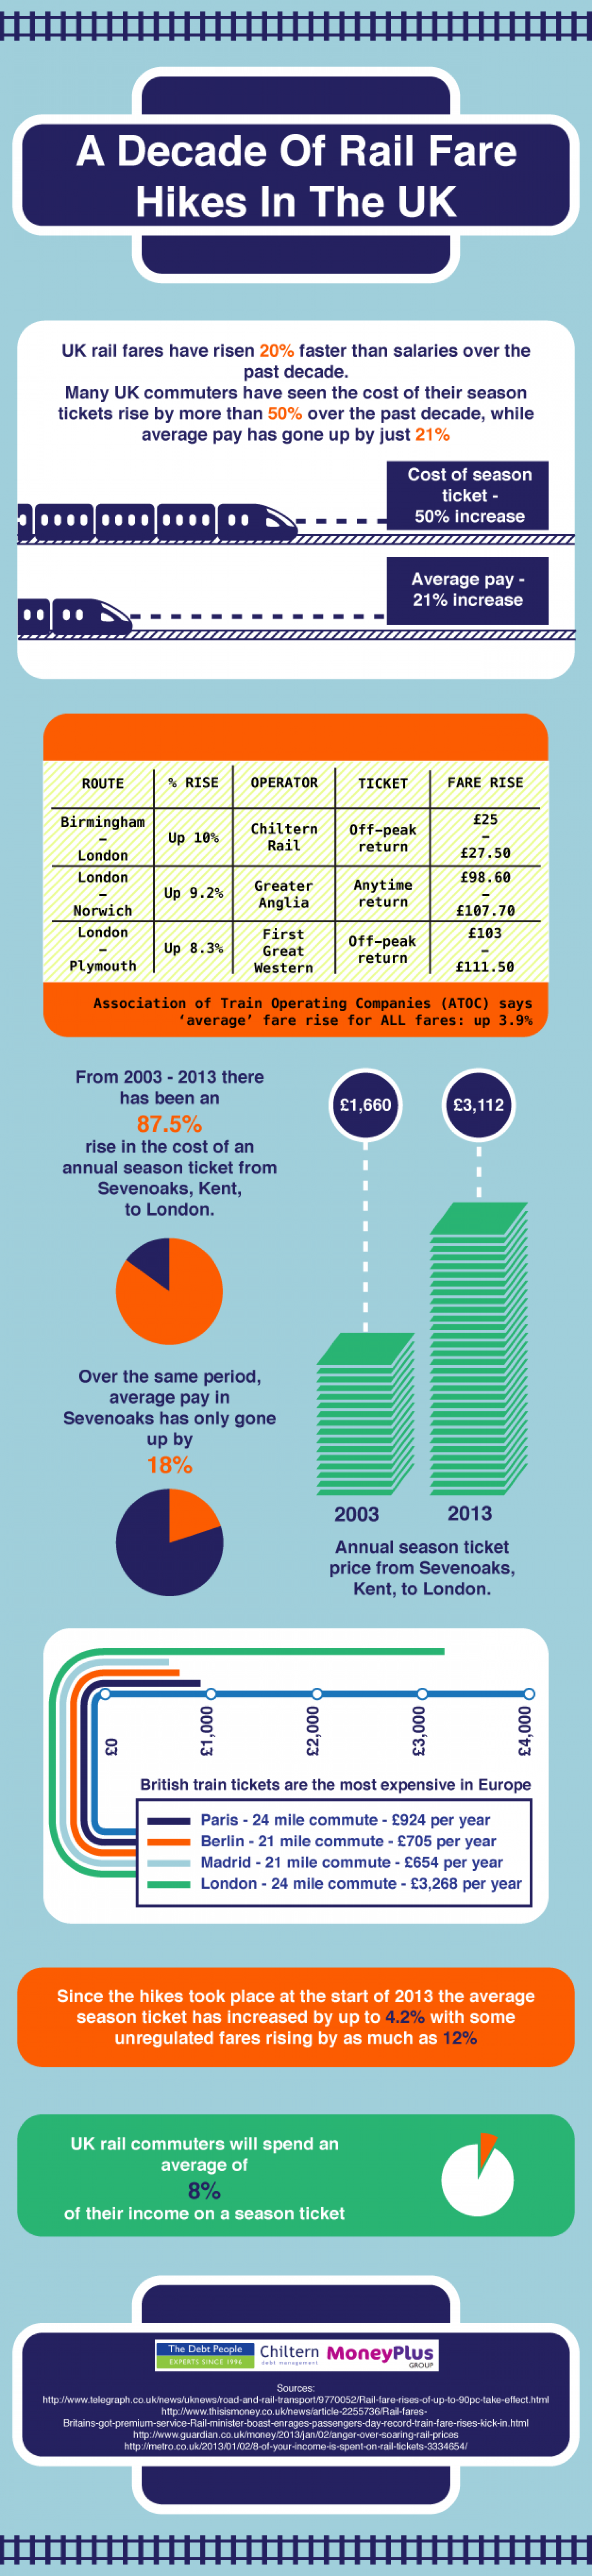 A Decade Of Rail Fare Hikes In The UK Infographic